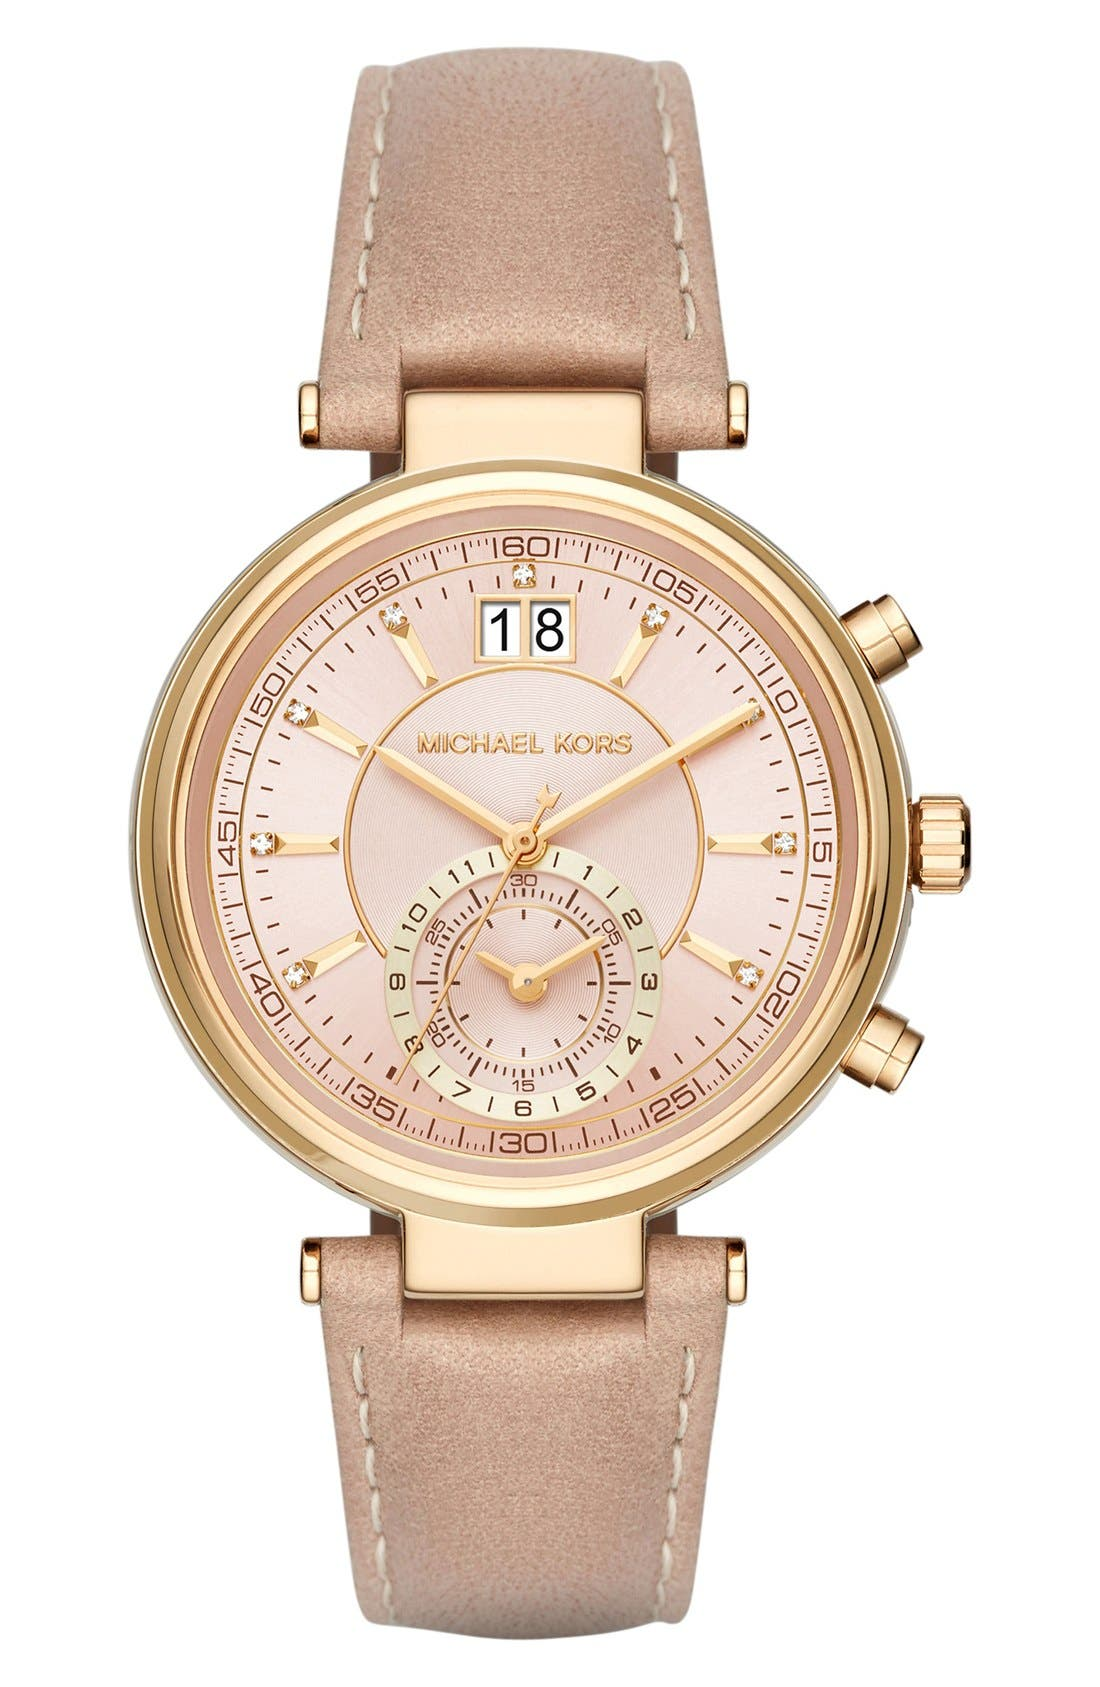 Main Image - Michael Kors 'Sawyer' Leather Strap Watch, 39mm